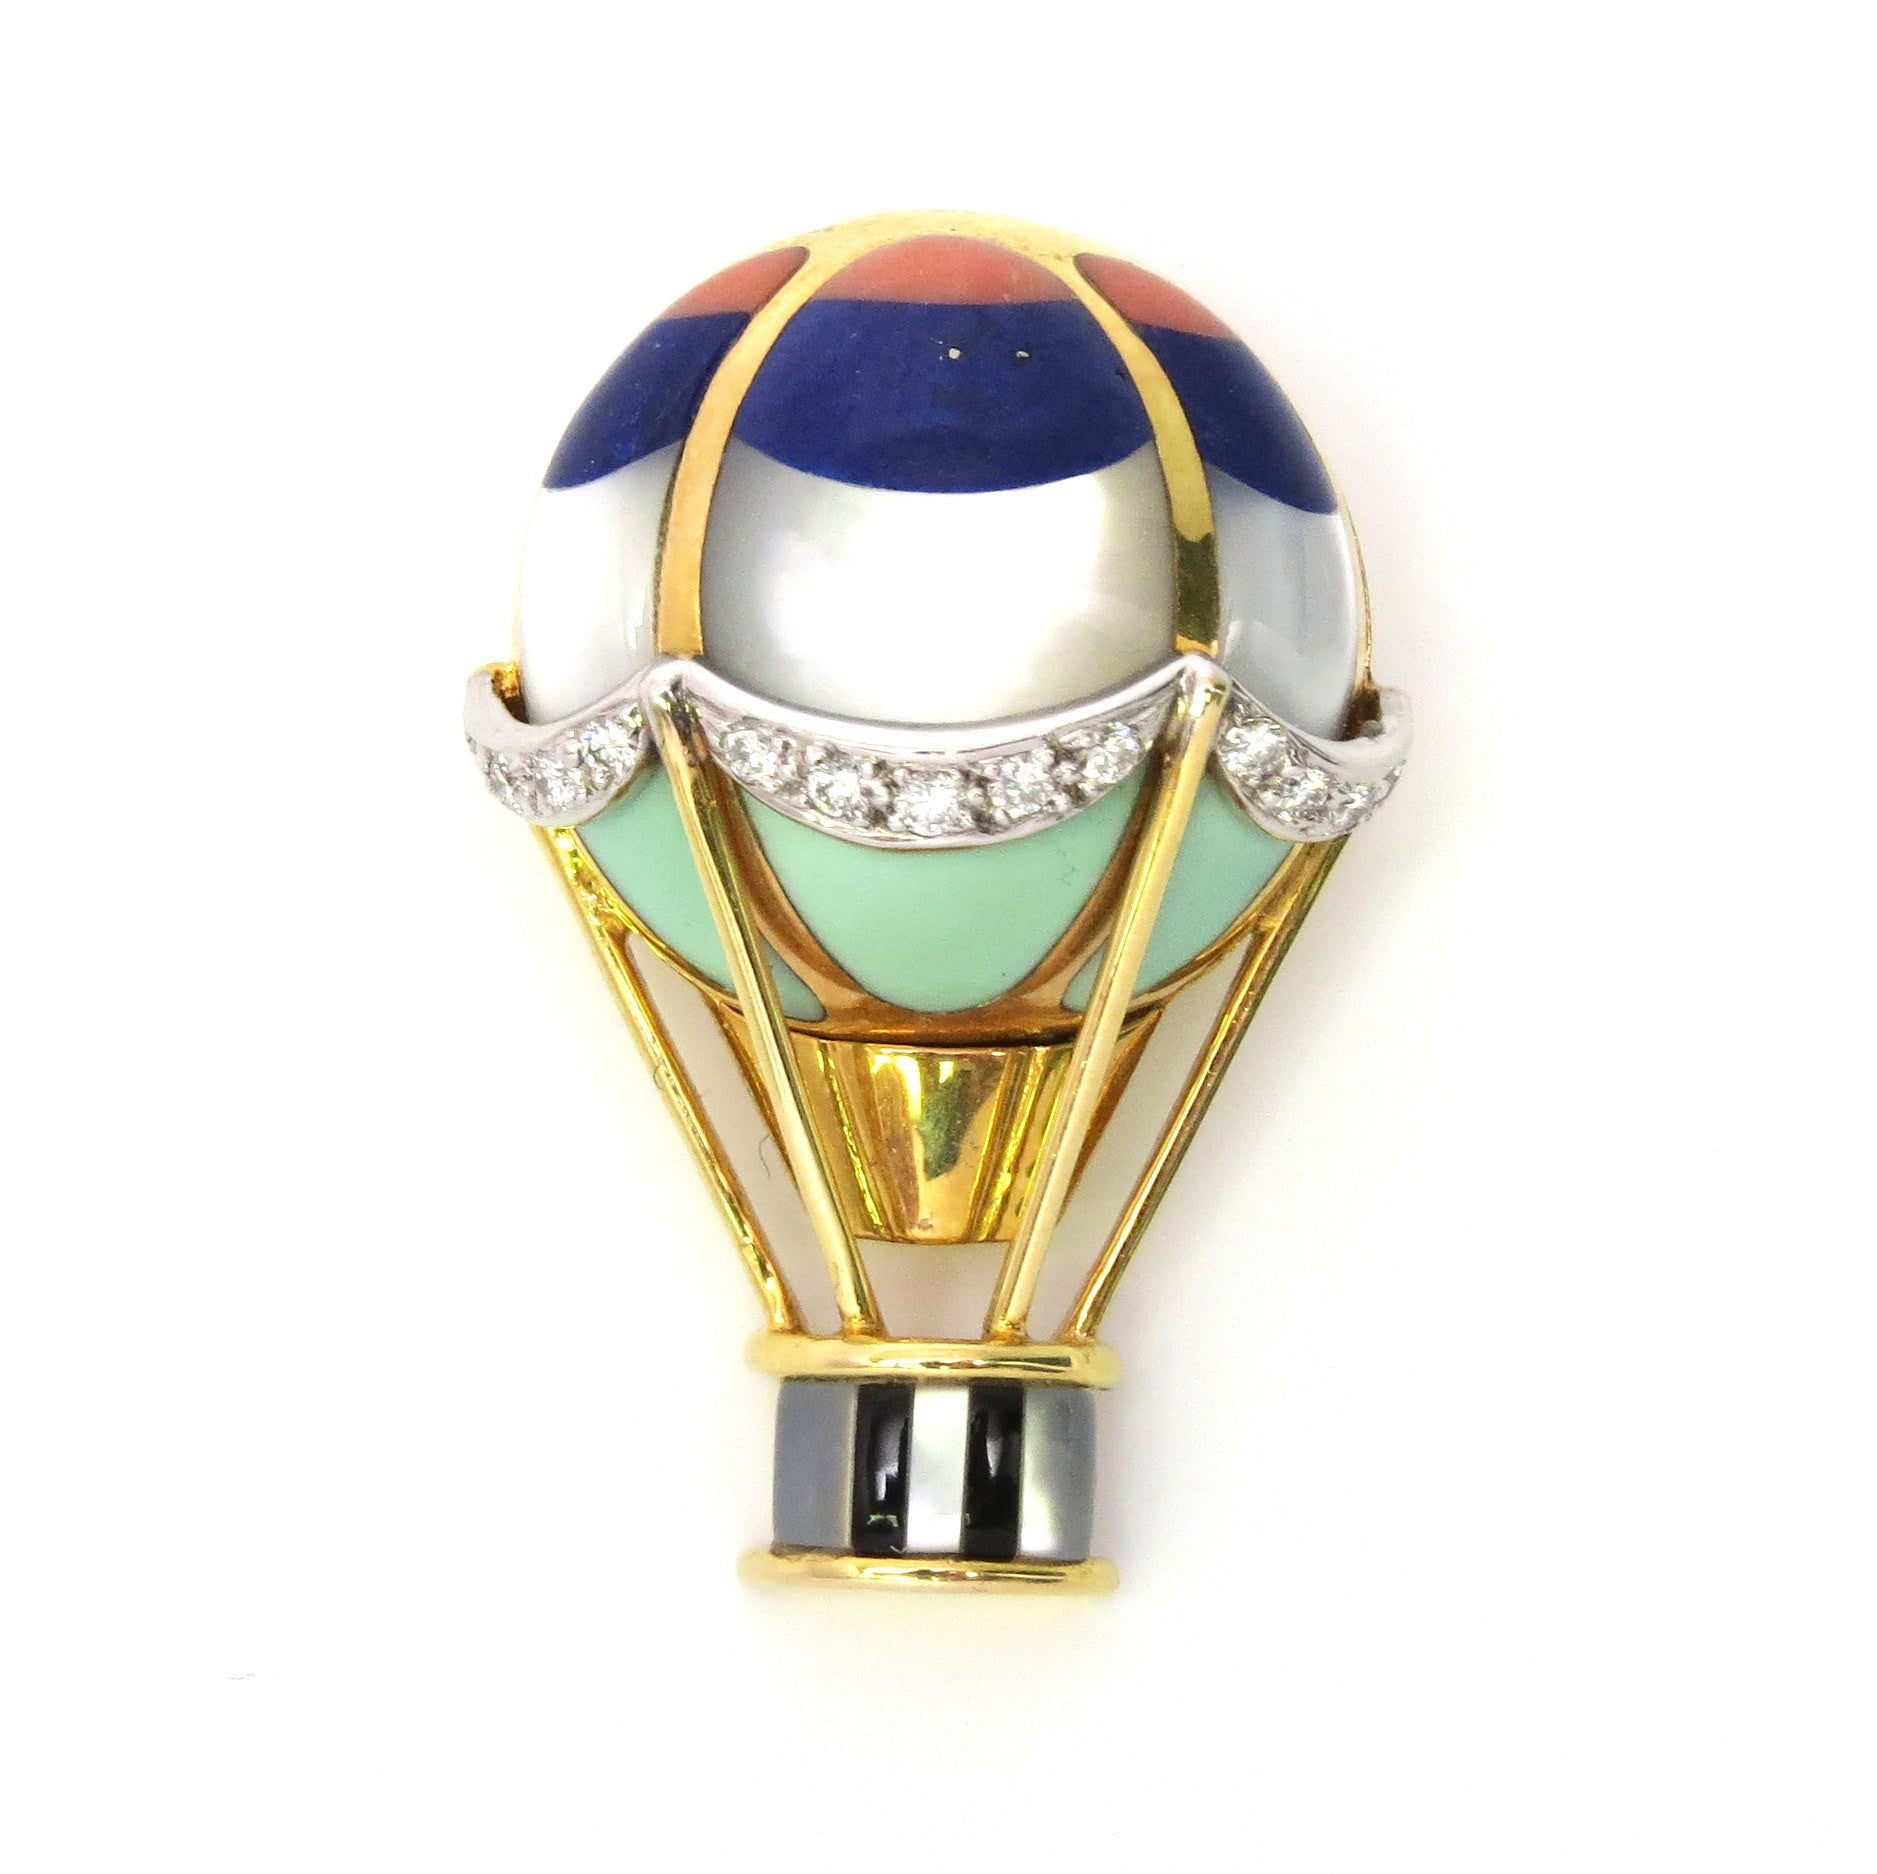 Asch Grossbardt Hot Air Balloon Brooch